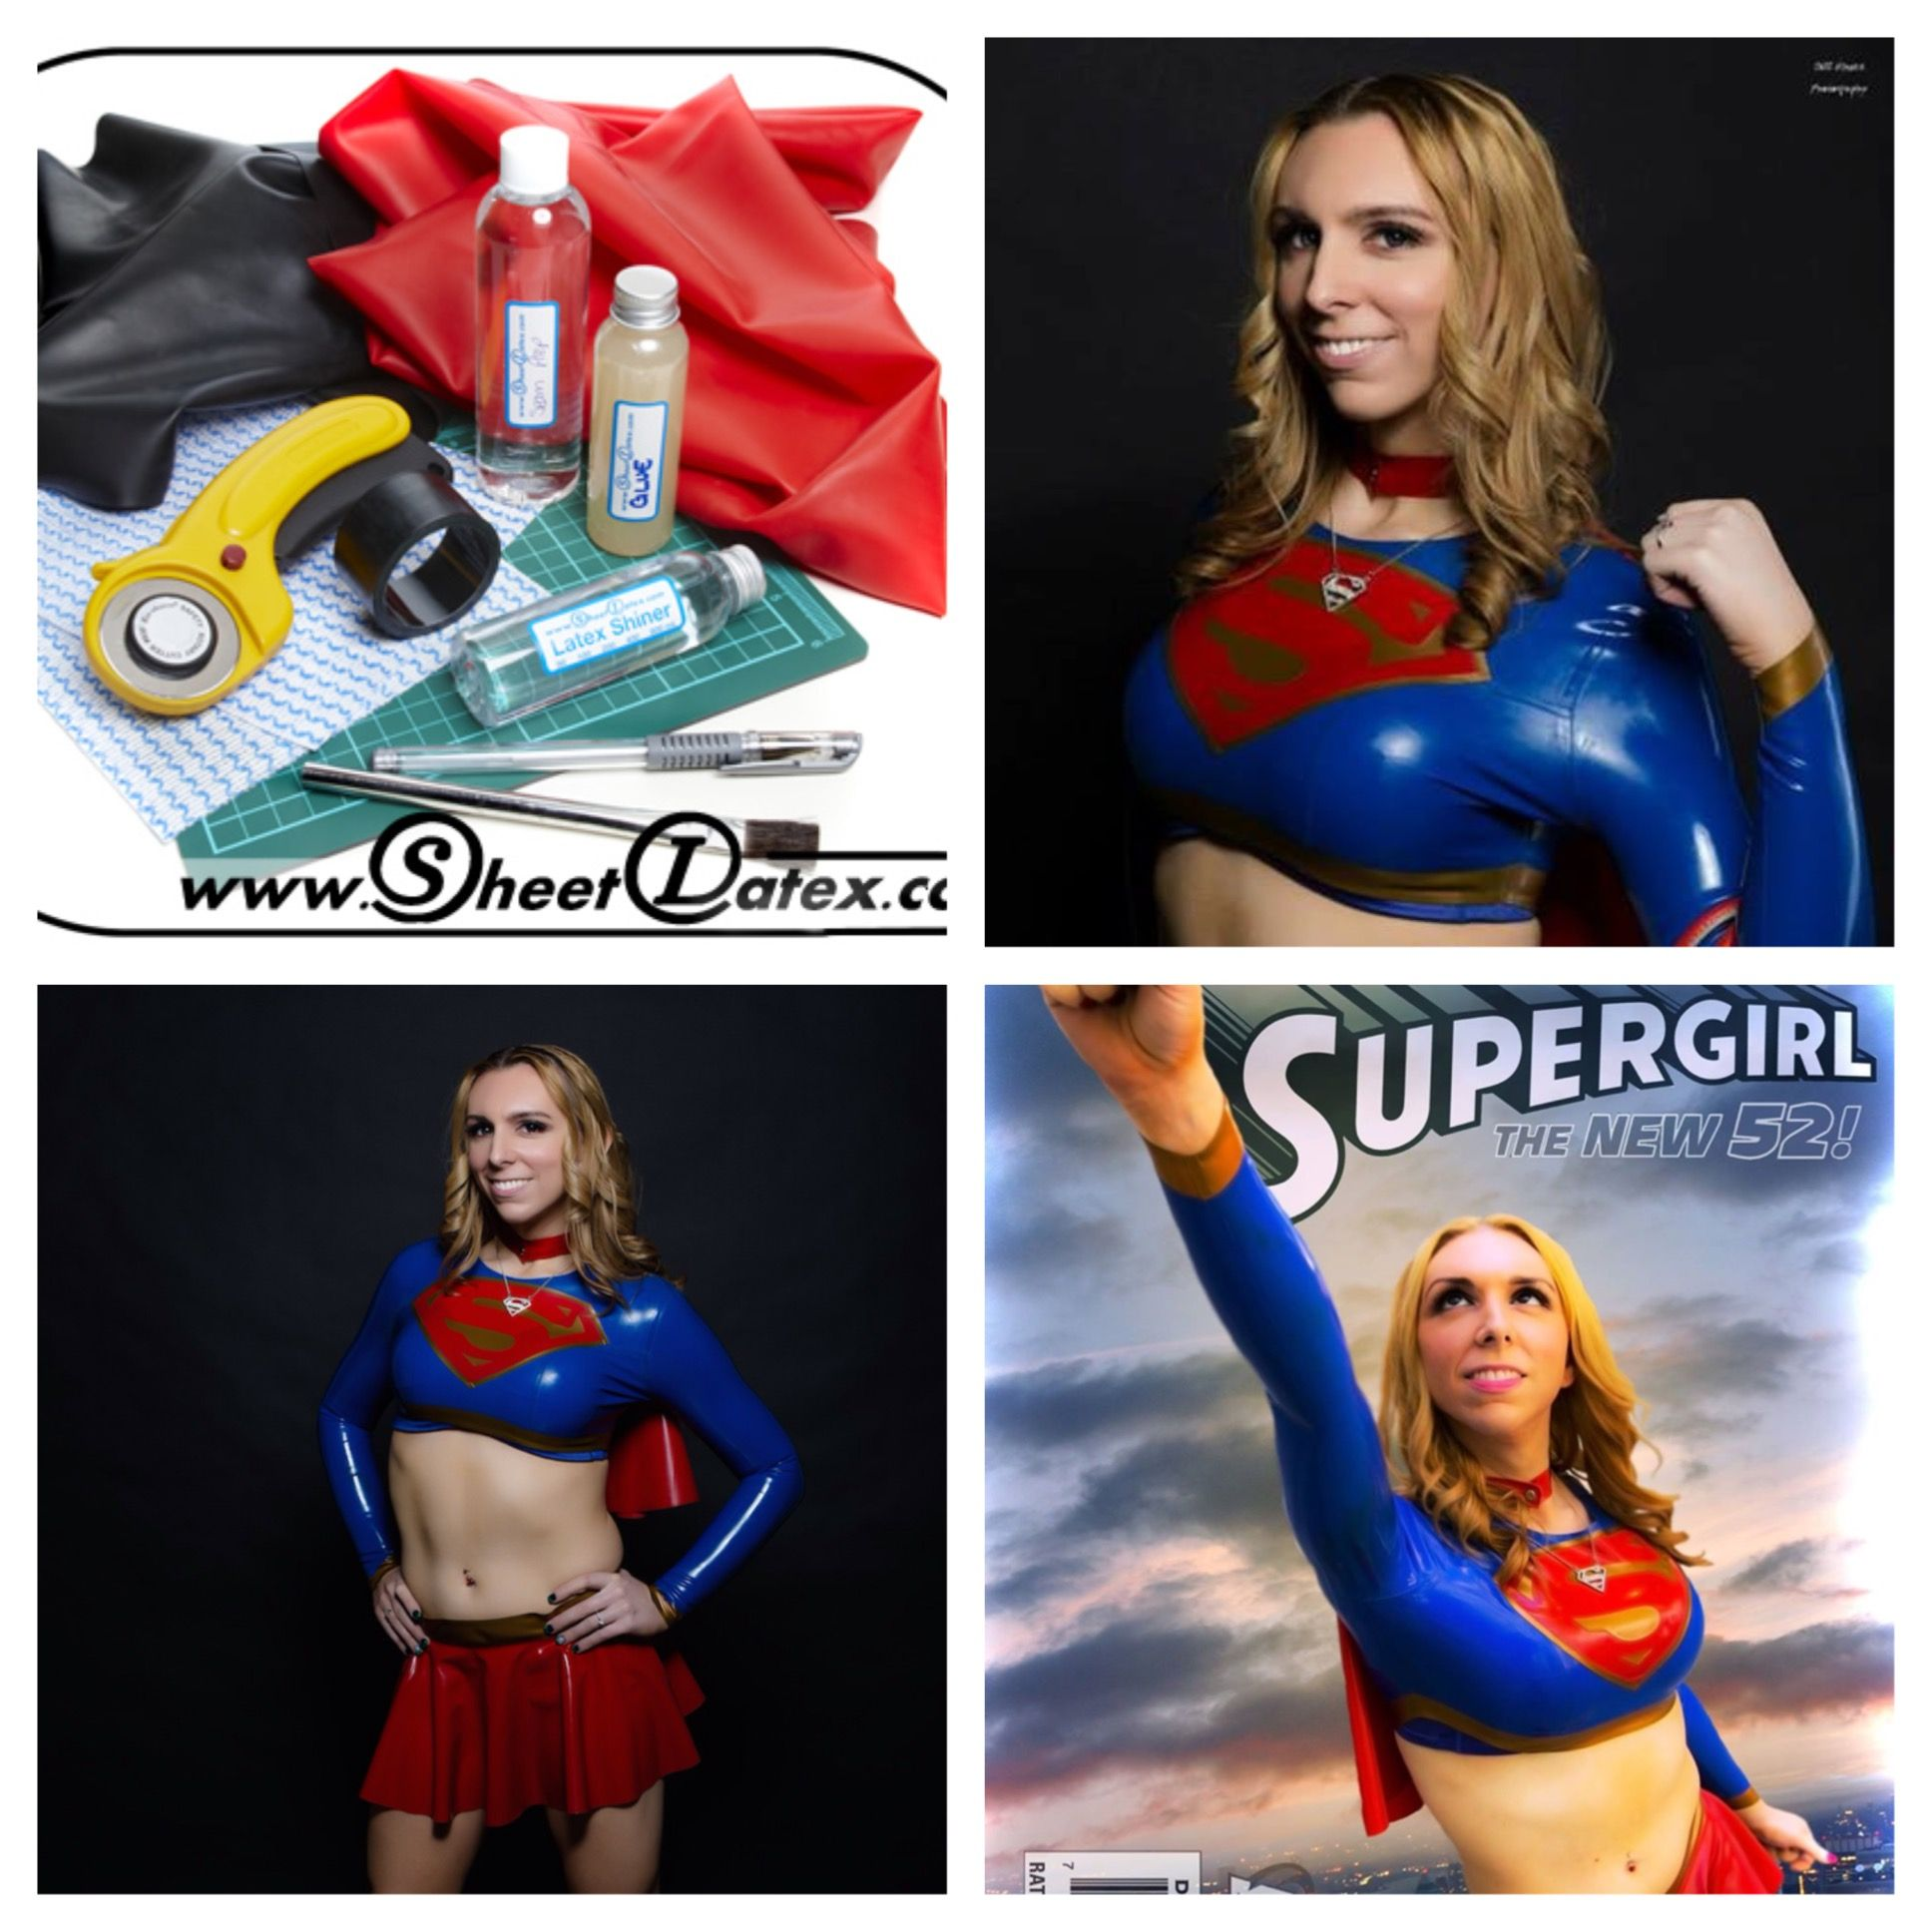 Free Giveaway: A Supergirl Latex Print and Latex-Costume-making Starter Kit ($70 value)   Enter Here: http://www.giveawaytab.com/mob.php?pageid=647267978666276